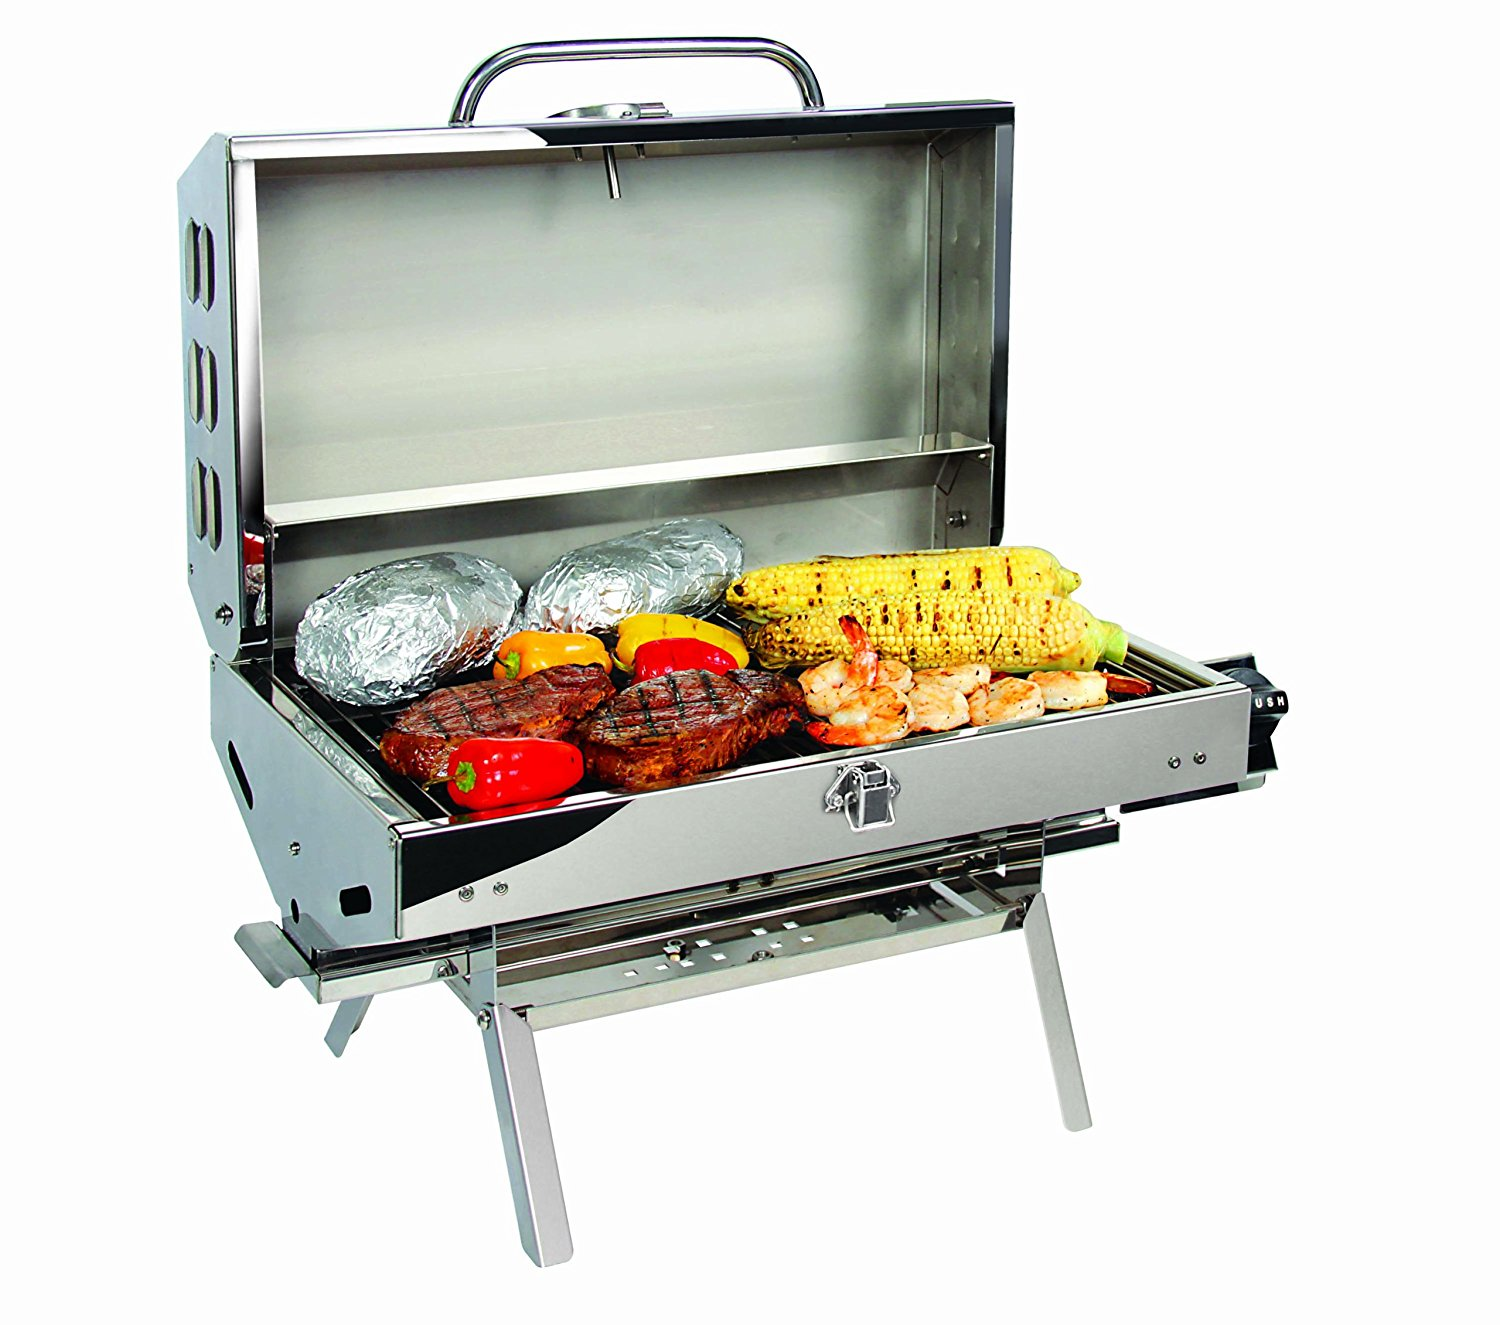 Camco 57305 Olympian 5500 Stainless Steel Grill Review